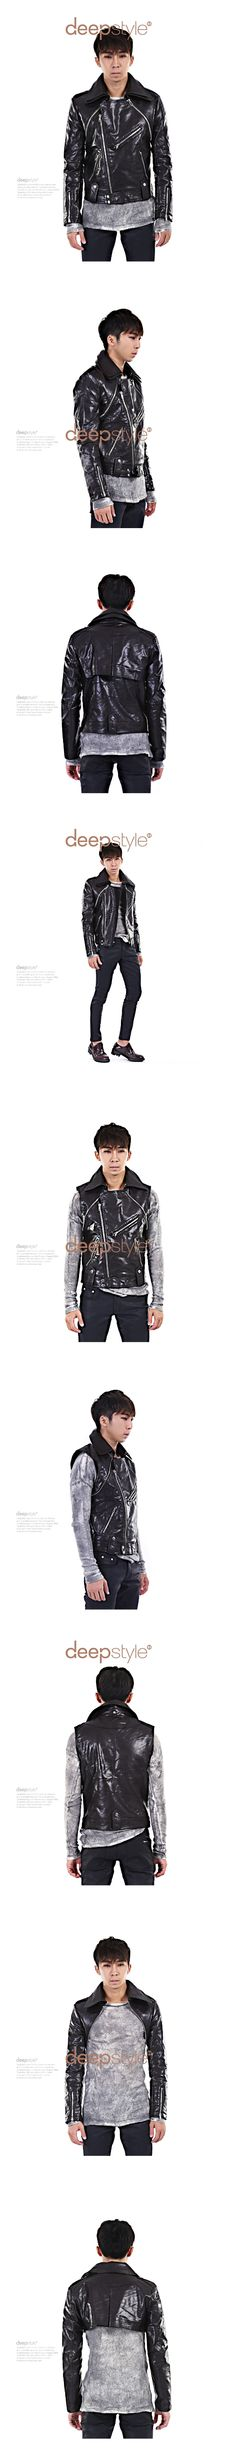 Convertible Faux Leather Biker Jacket